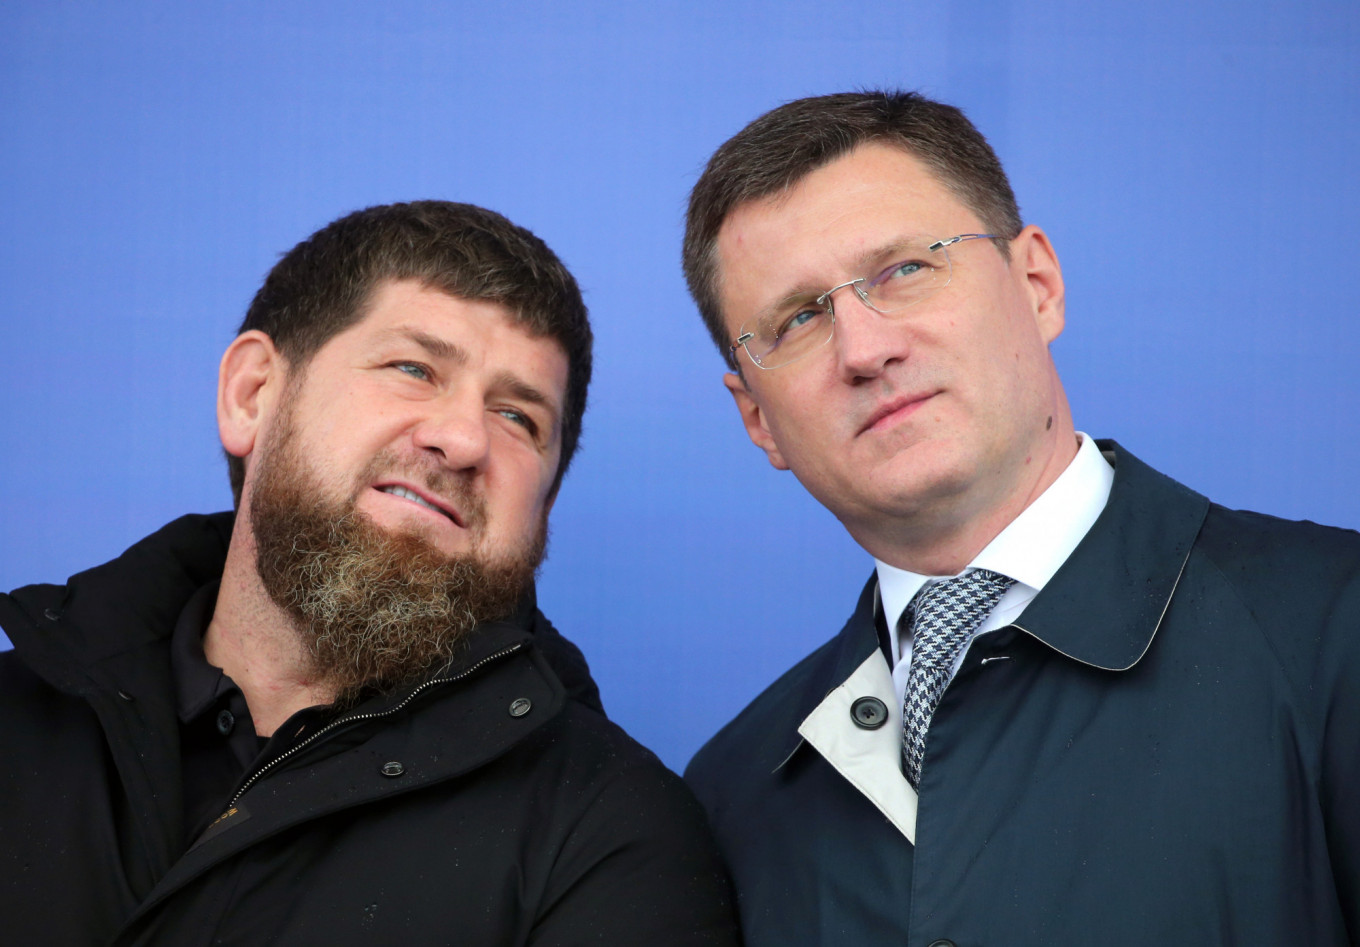 Alexander Novak (right), has been appointed a deputy prime minister in the reshuffle. Pictured earlier November with Chechen leader Ramzan Kadyrov (left) at the opening of a digital electricity substation.  Yelena Afonina/TASS